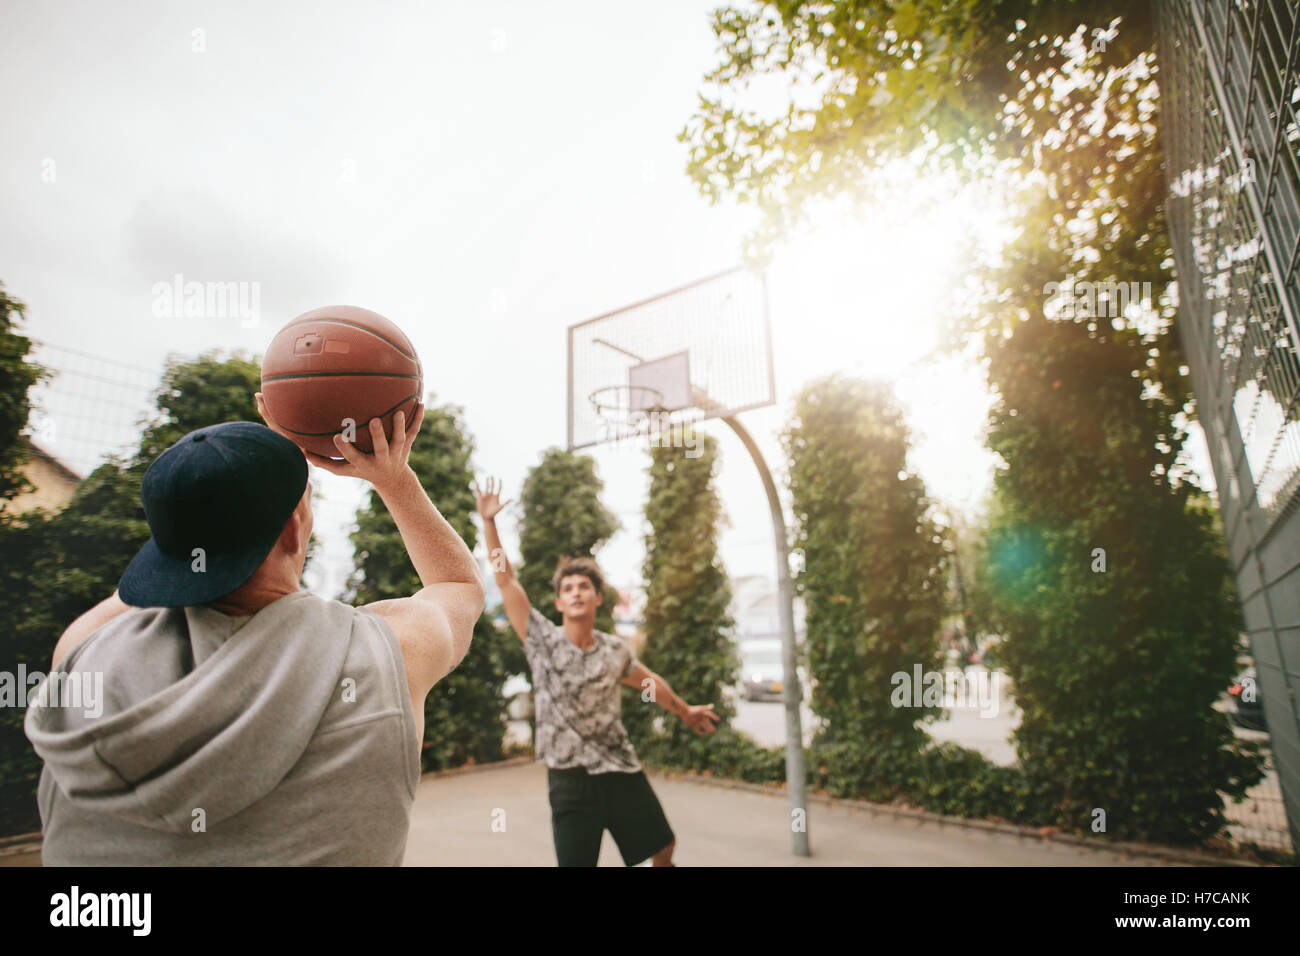 Streetball players on court playing basketball. Young guy taking shot to the basket with friend blocking. - Stock Image